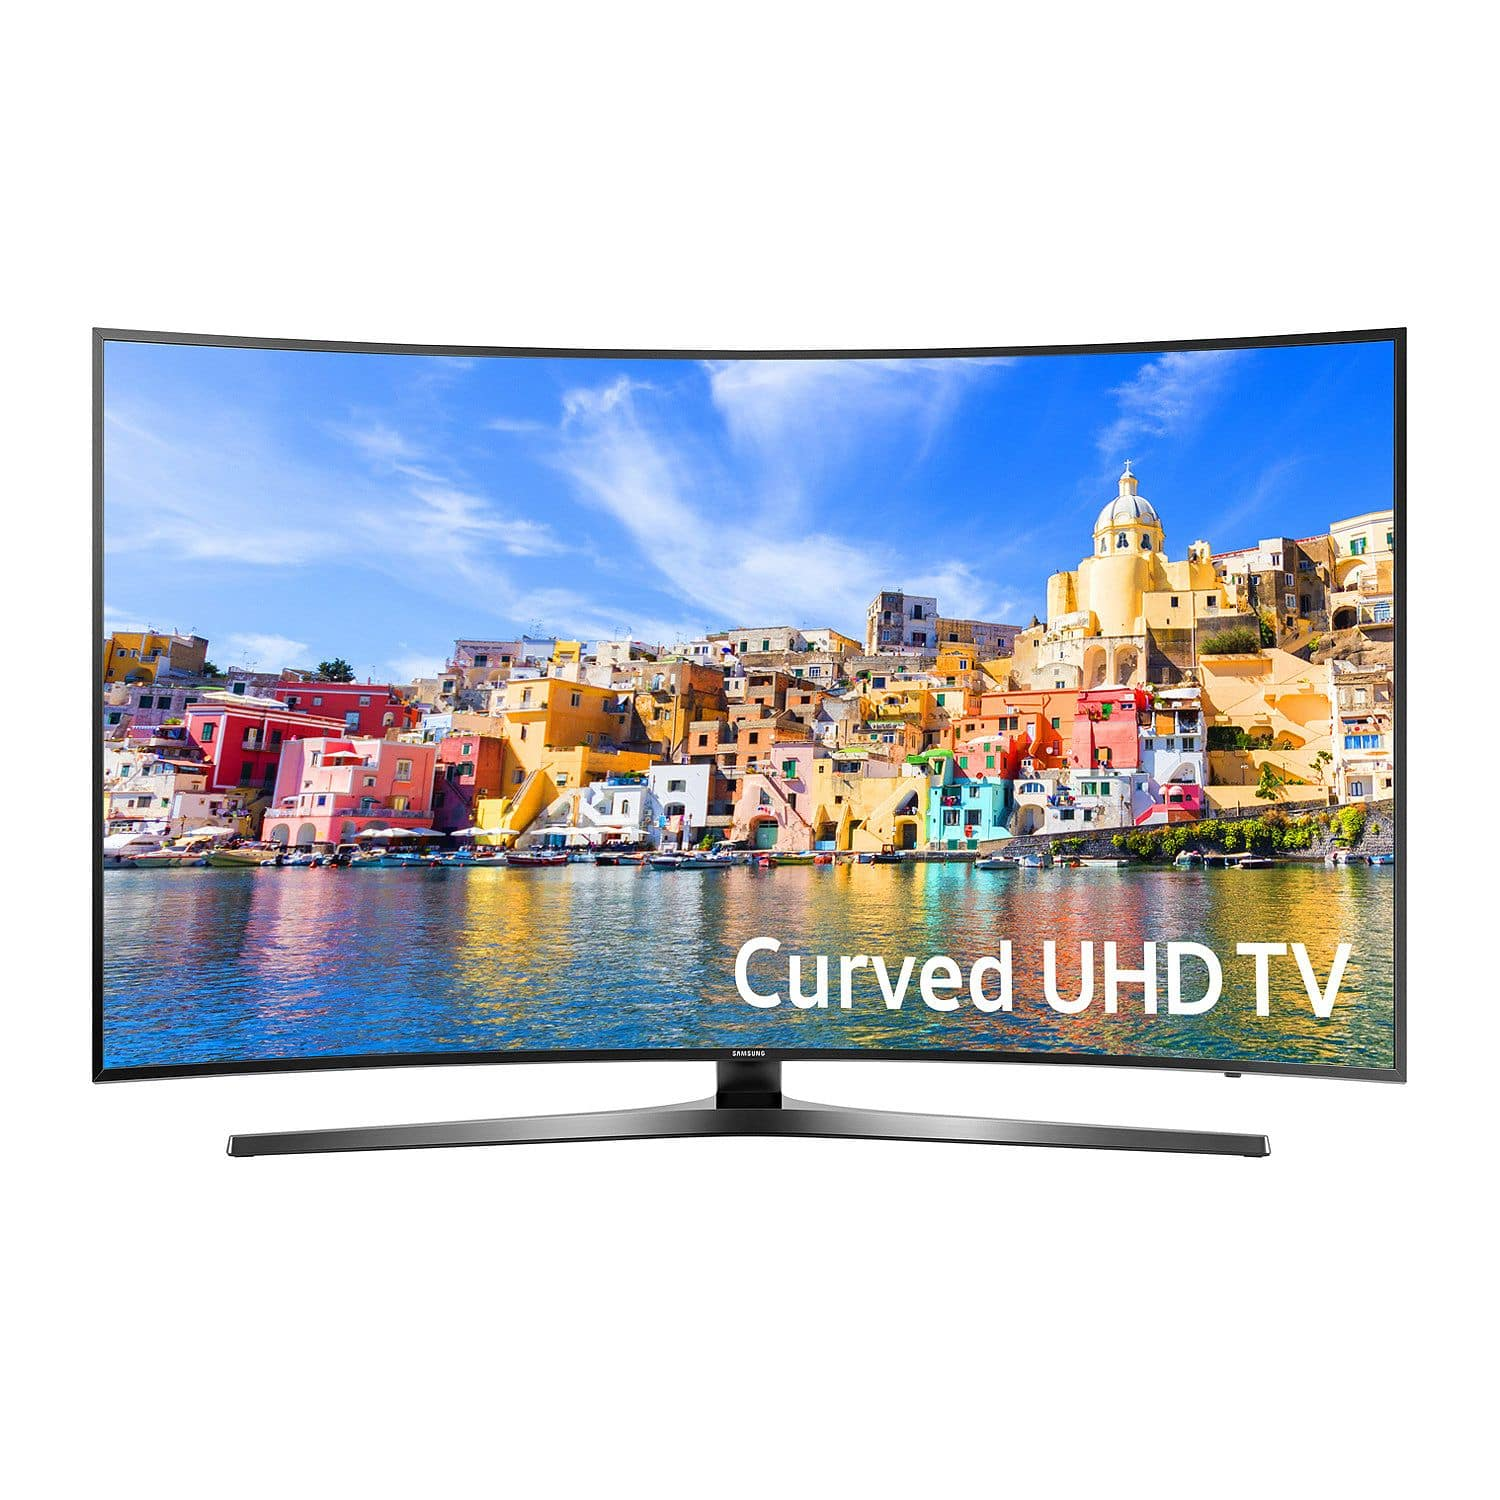 """Samsung 43"""" 4K UHD Smart Curved HDR LED TV - UN43KU7500 - $448 @ Sam's Club B&M and online w/ free shipping - May 13th ONLY"""